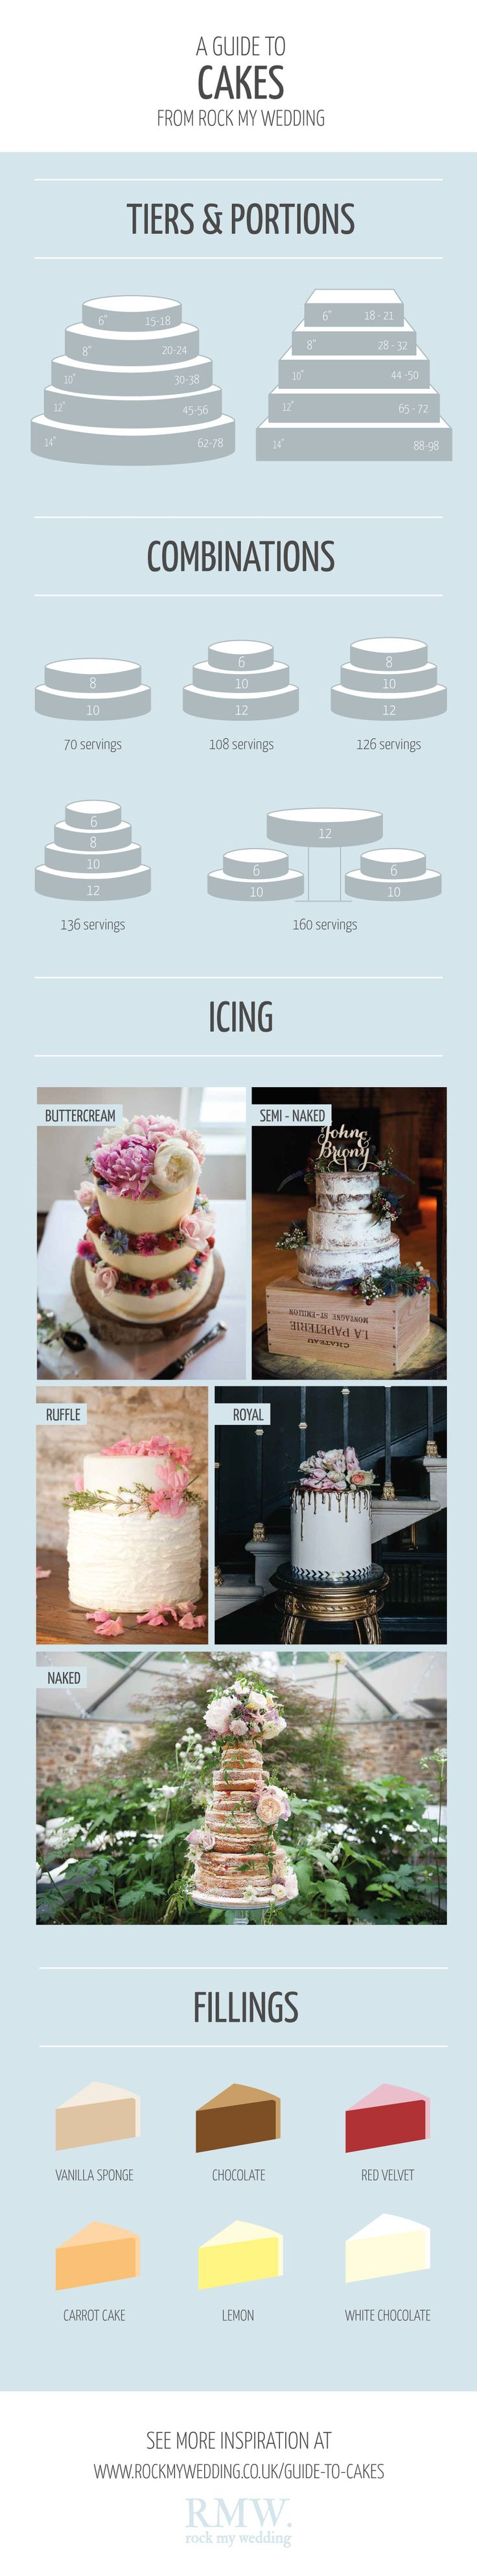 Rock My Wedding Guide to Cakes | Wedding Cake Inspiration | Naked Cake | Frosing | Royal Icing | http://www.rockmywedding.co.uk/guide-to-cakes/